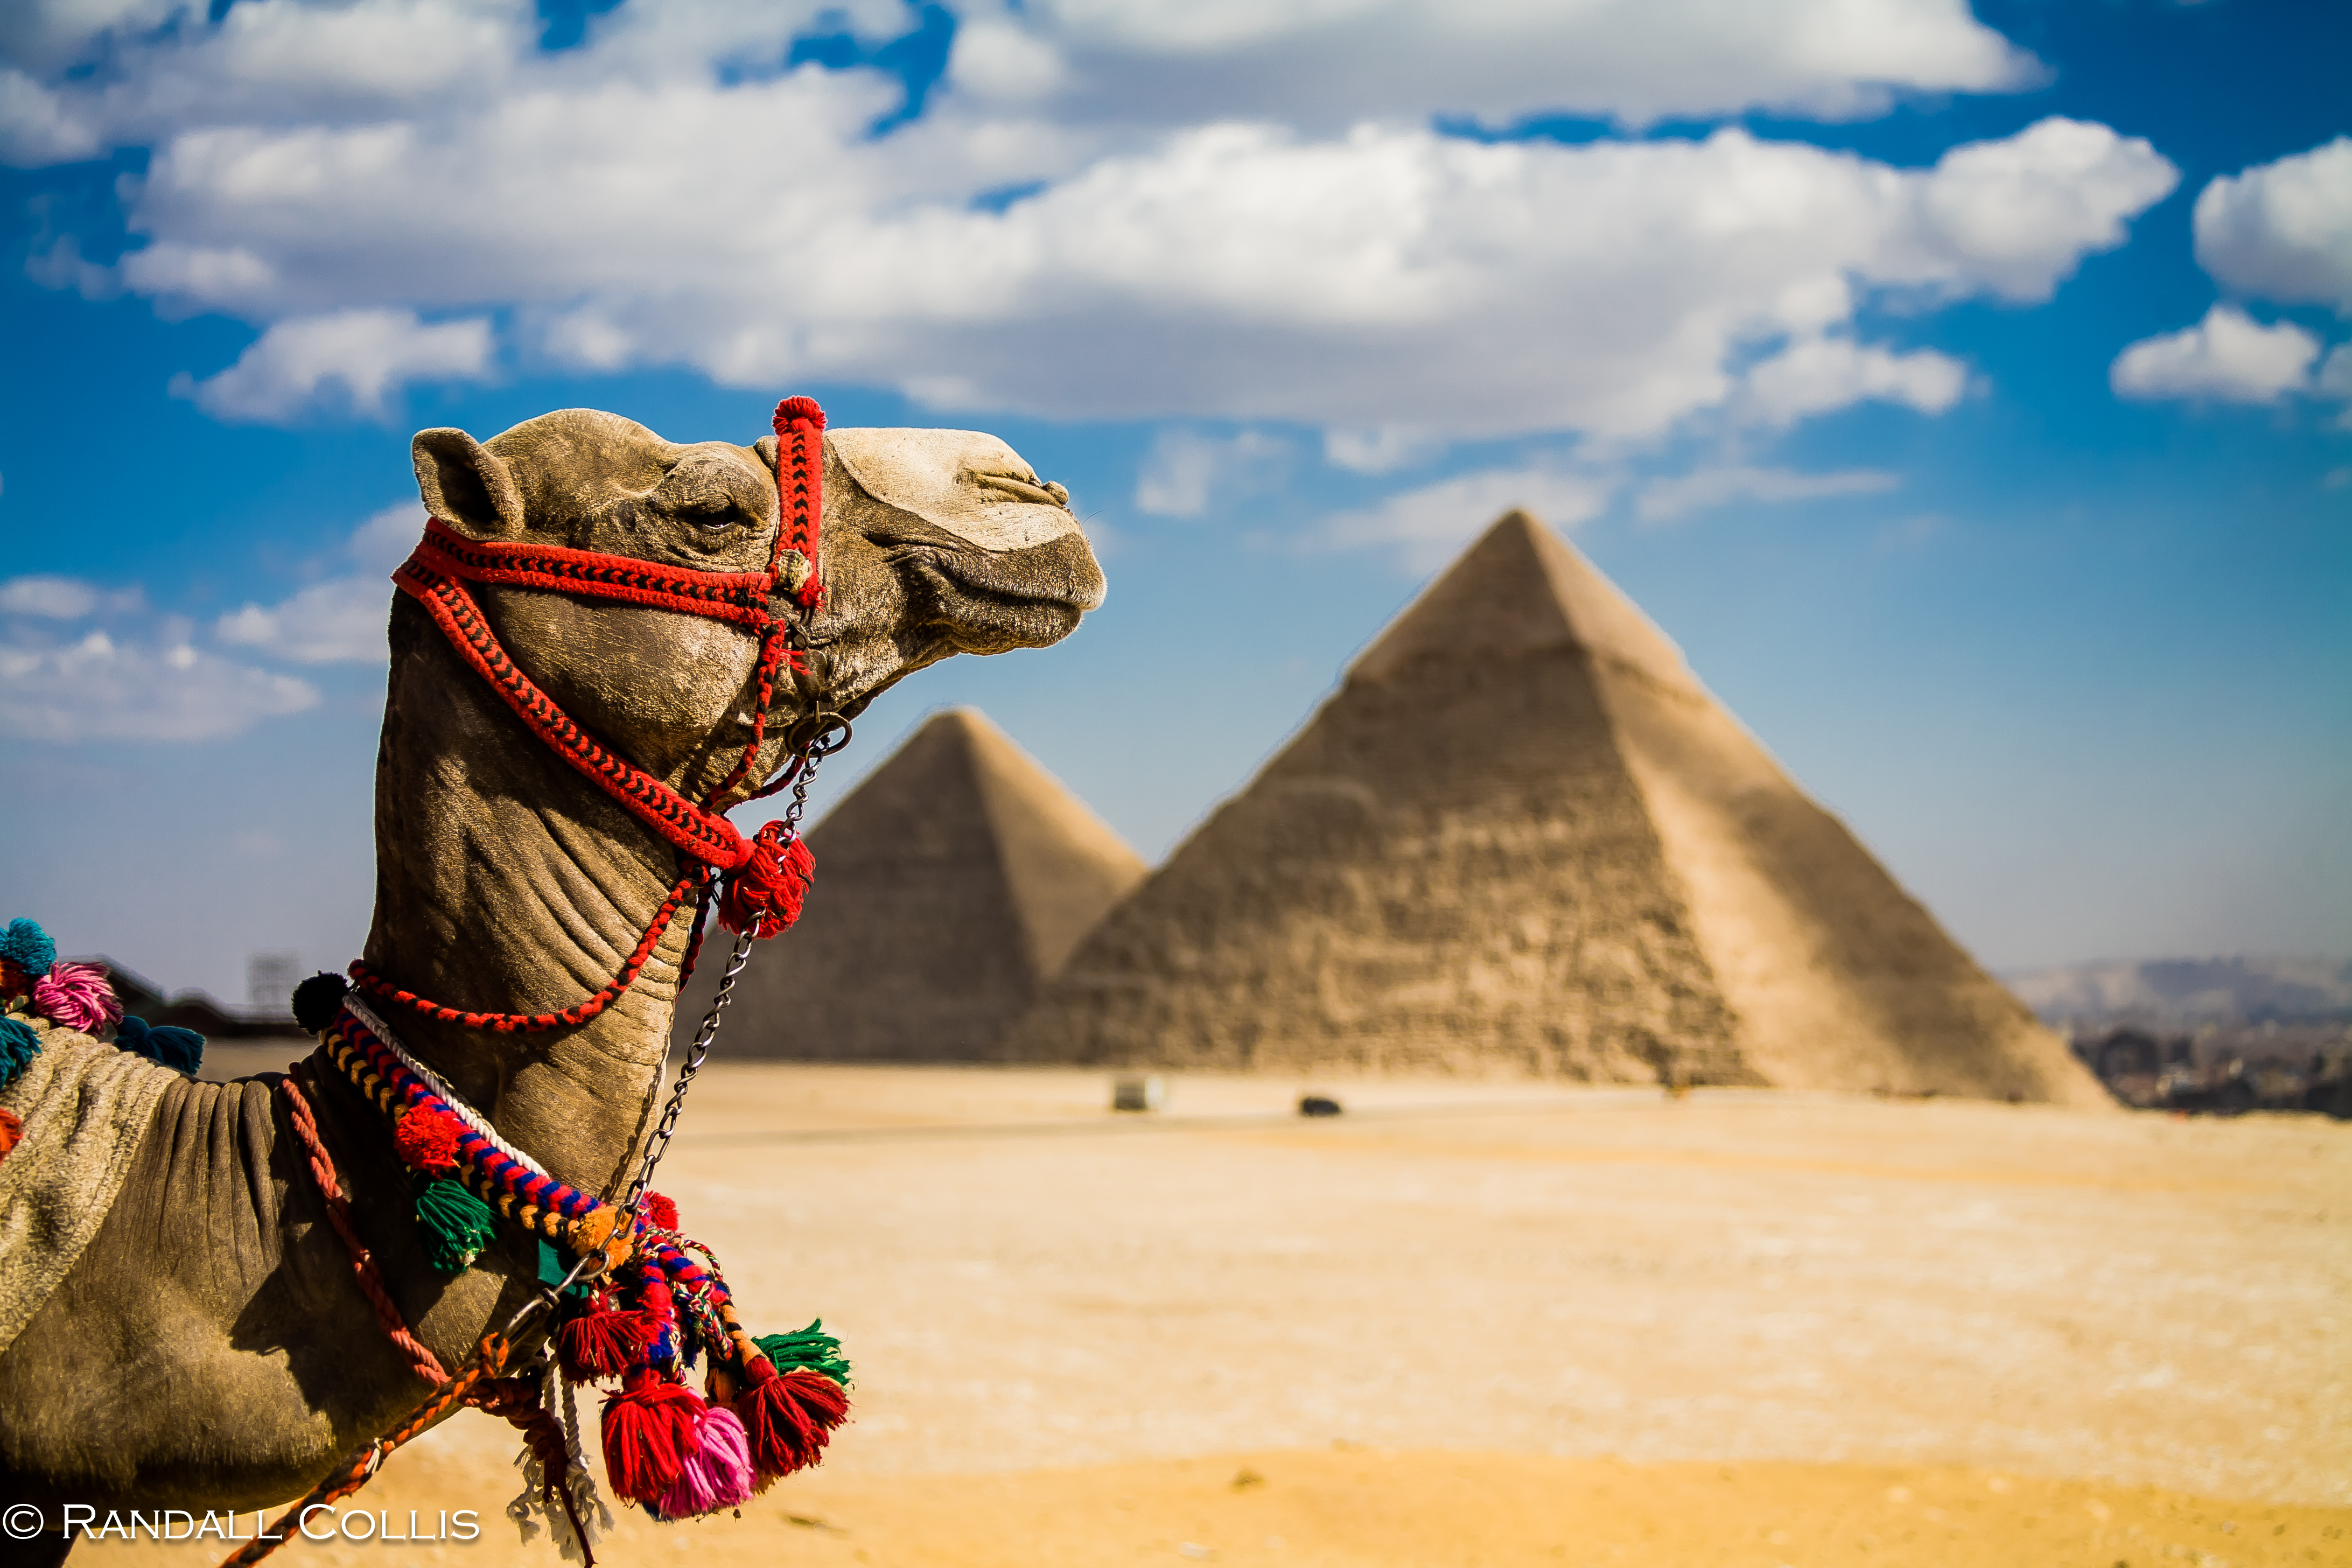 From Omaha to Egypt: How to Forget the Pyramids